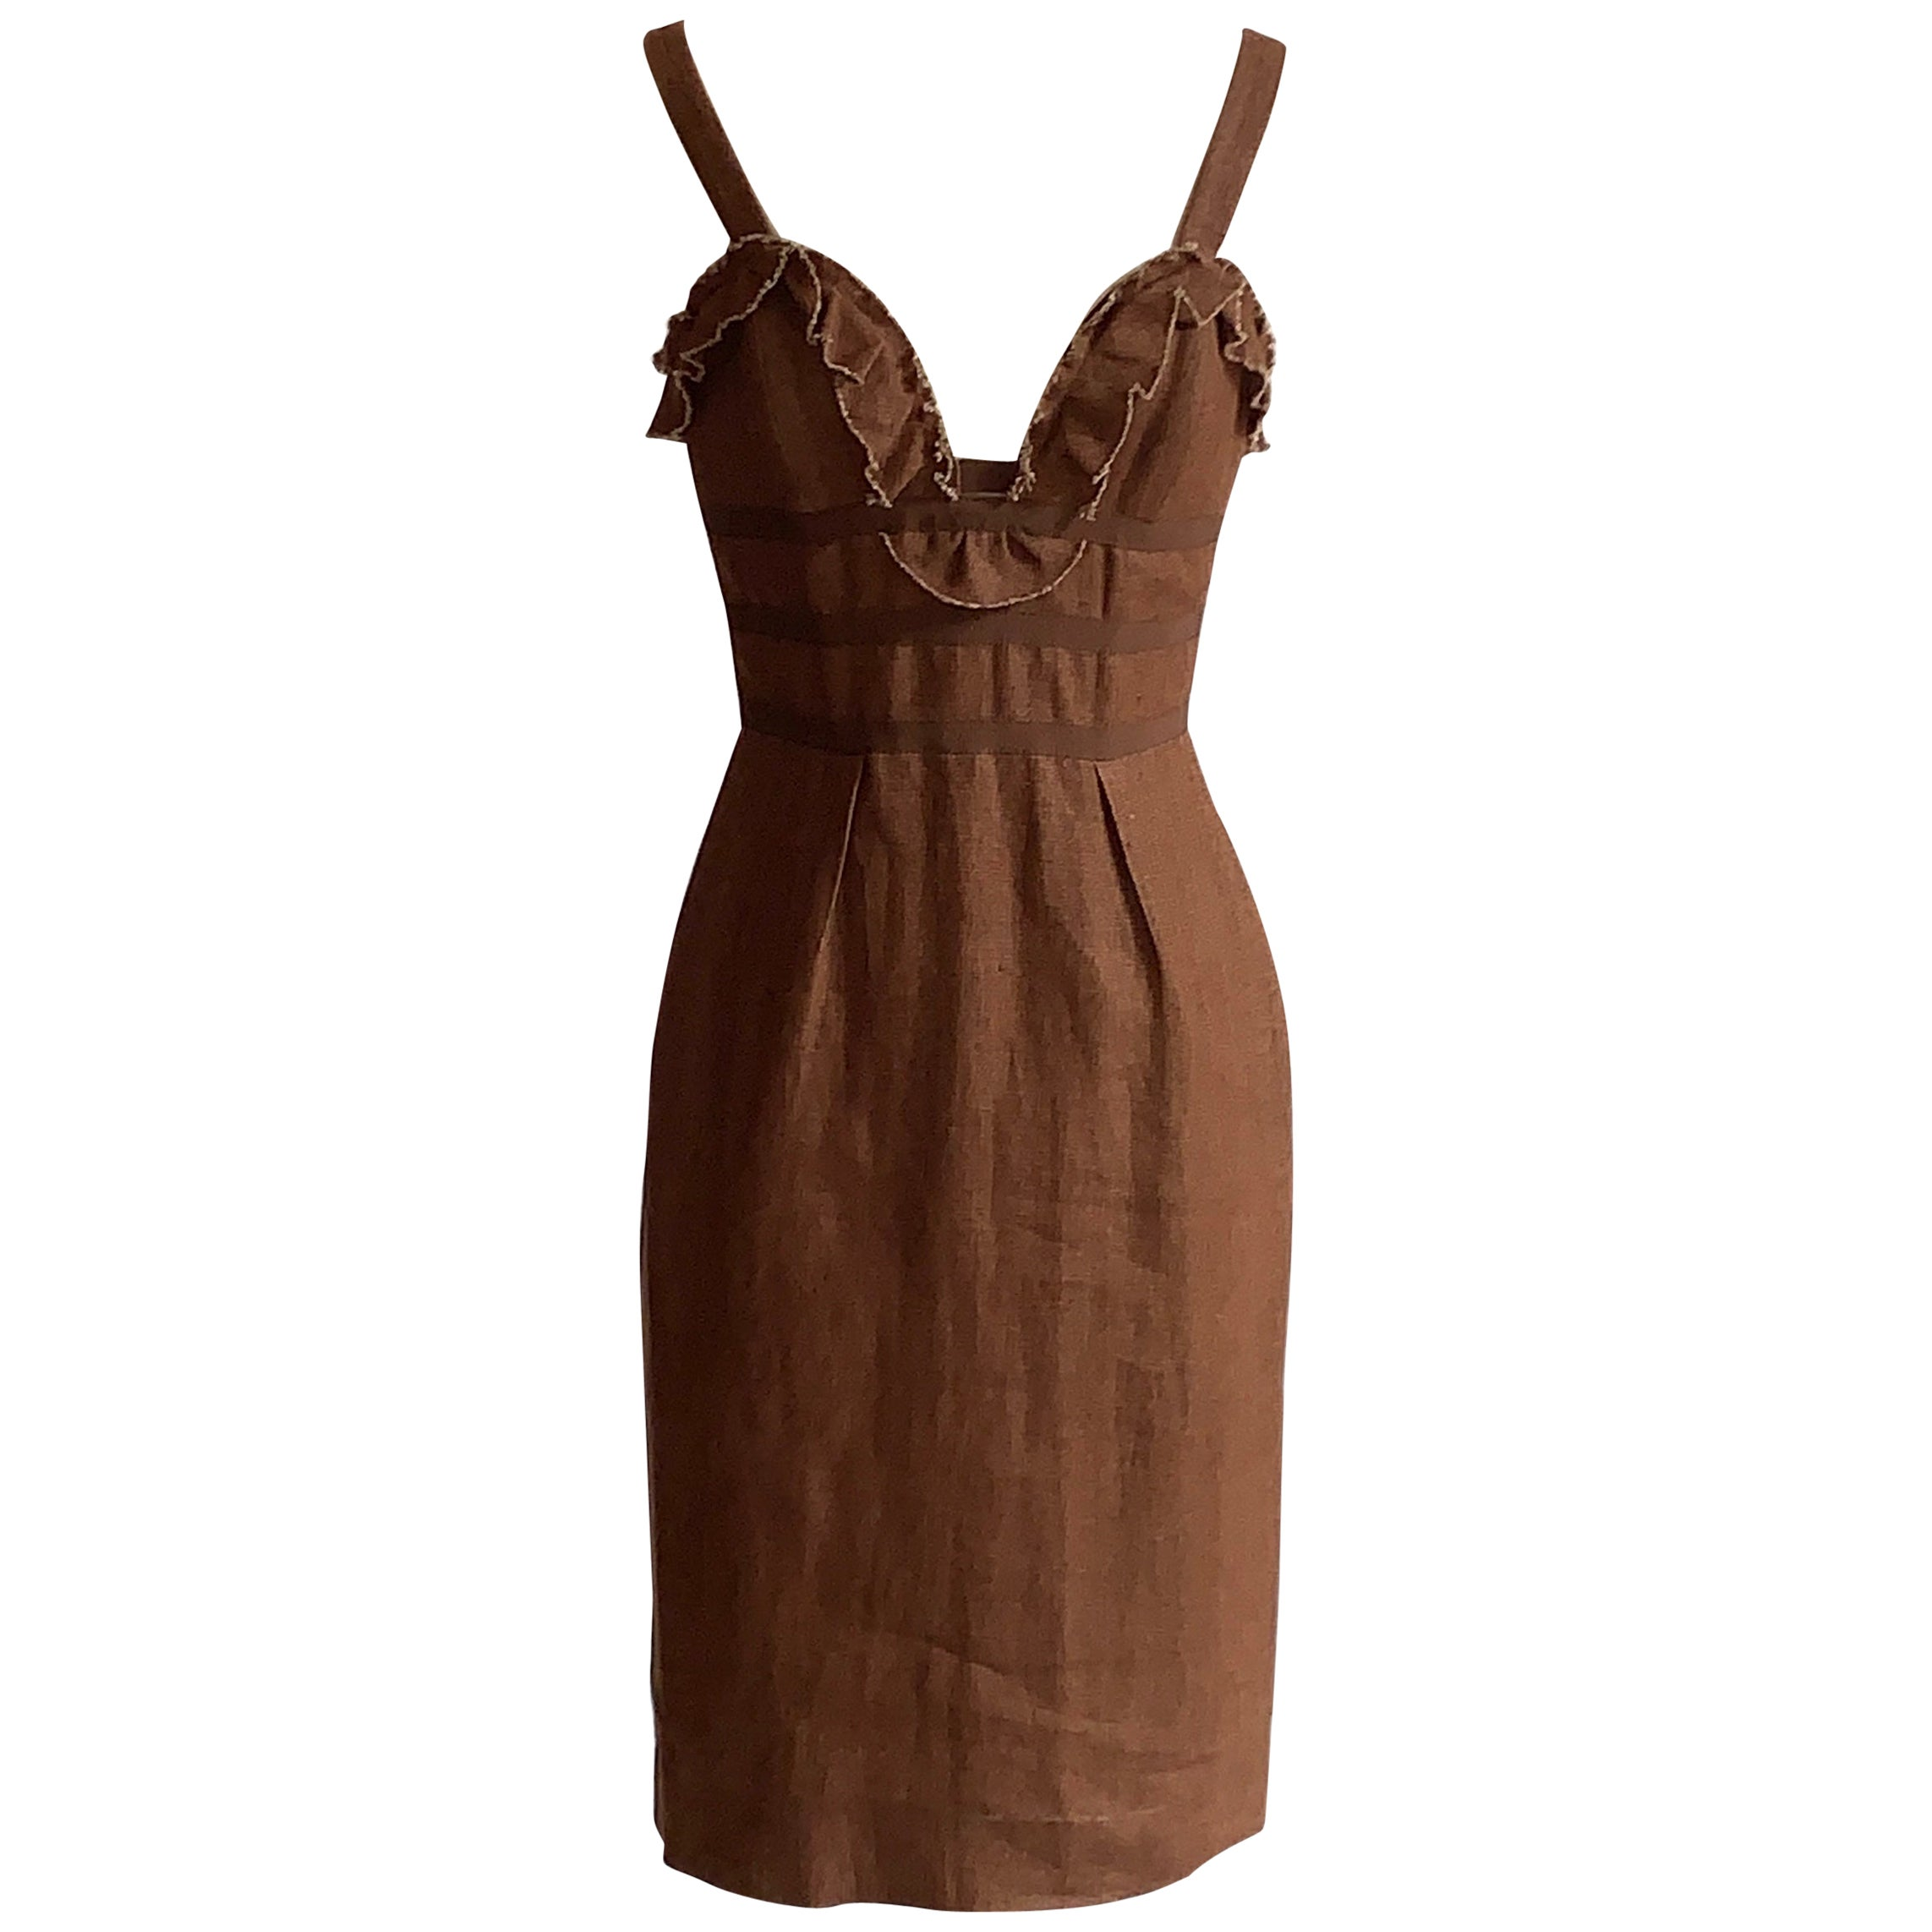 Oscar de la Renta 2007 Runway Look Brown Ruffle Trim Sun Dress